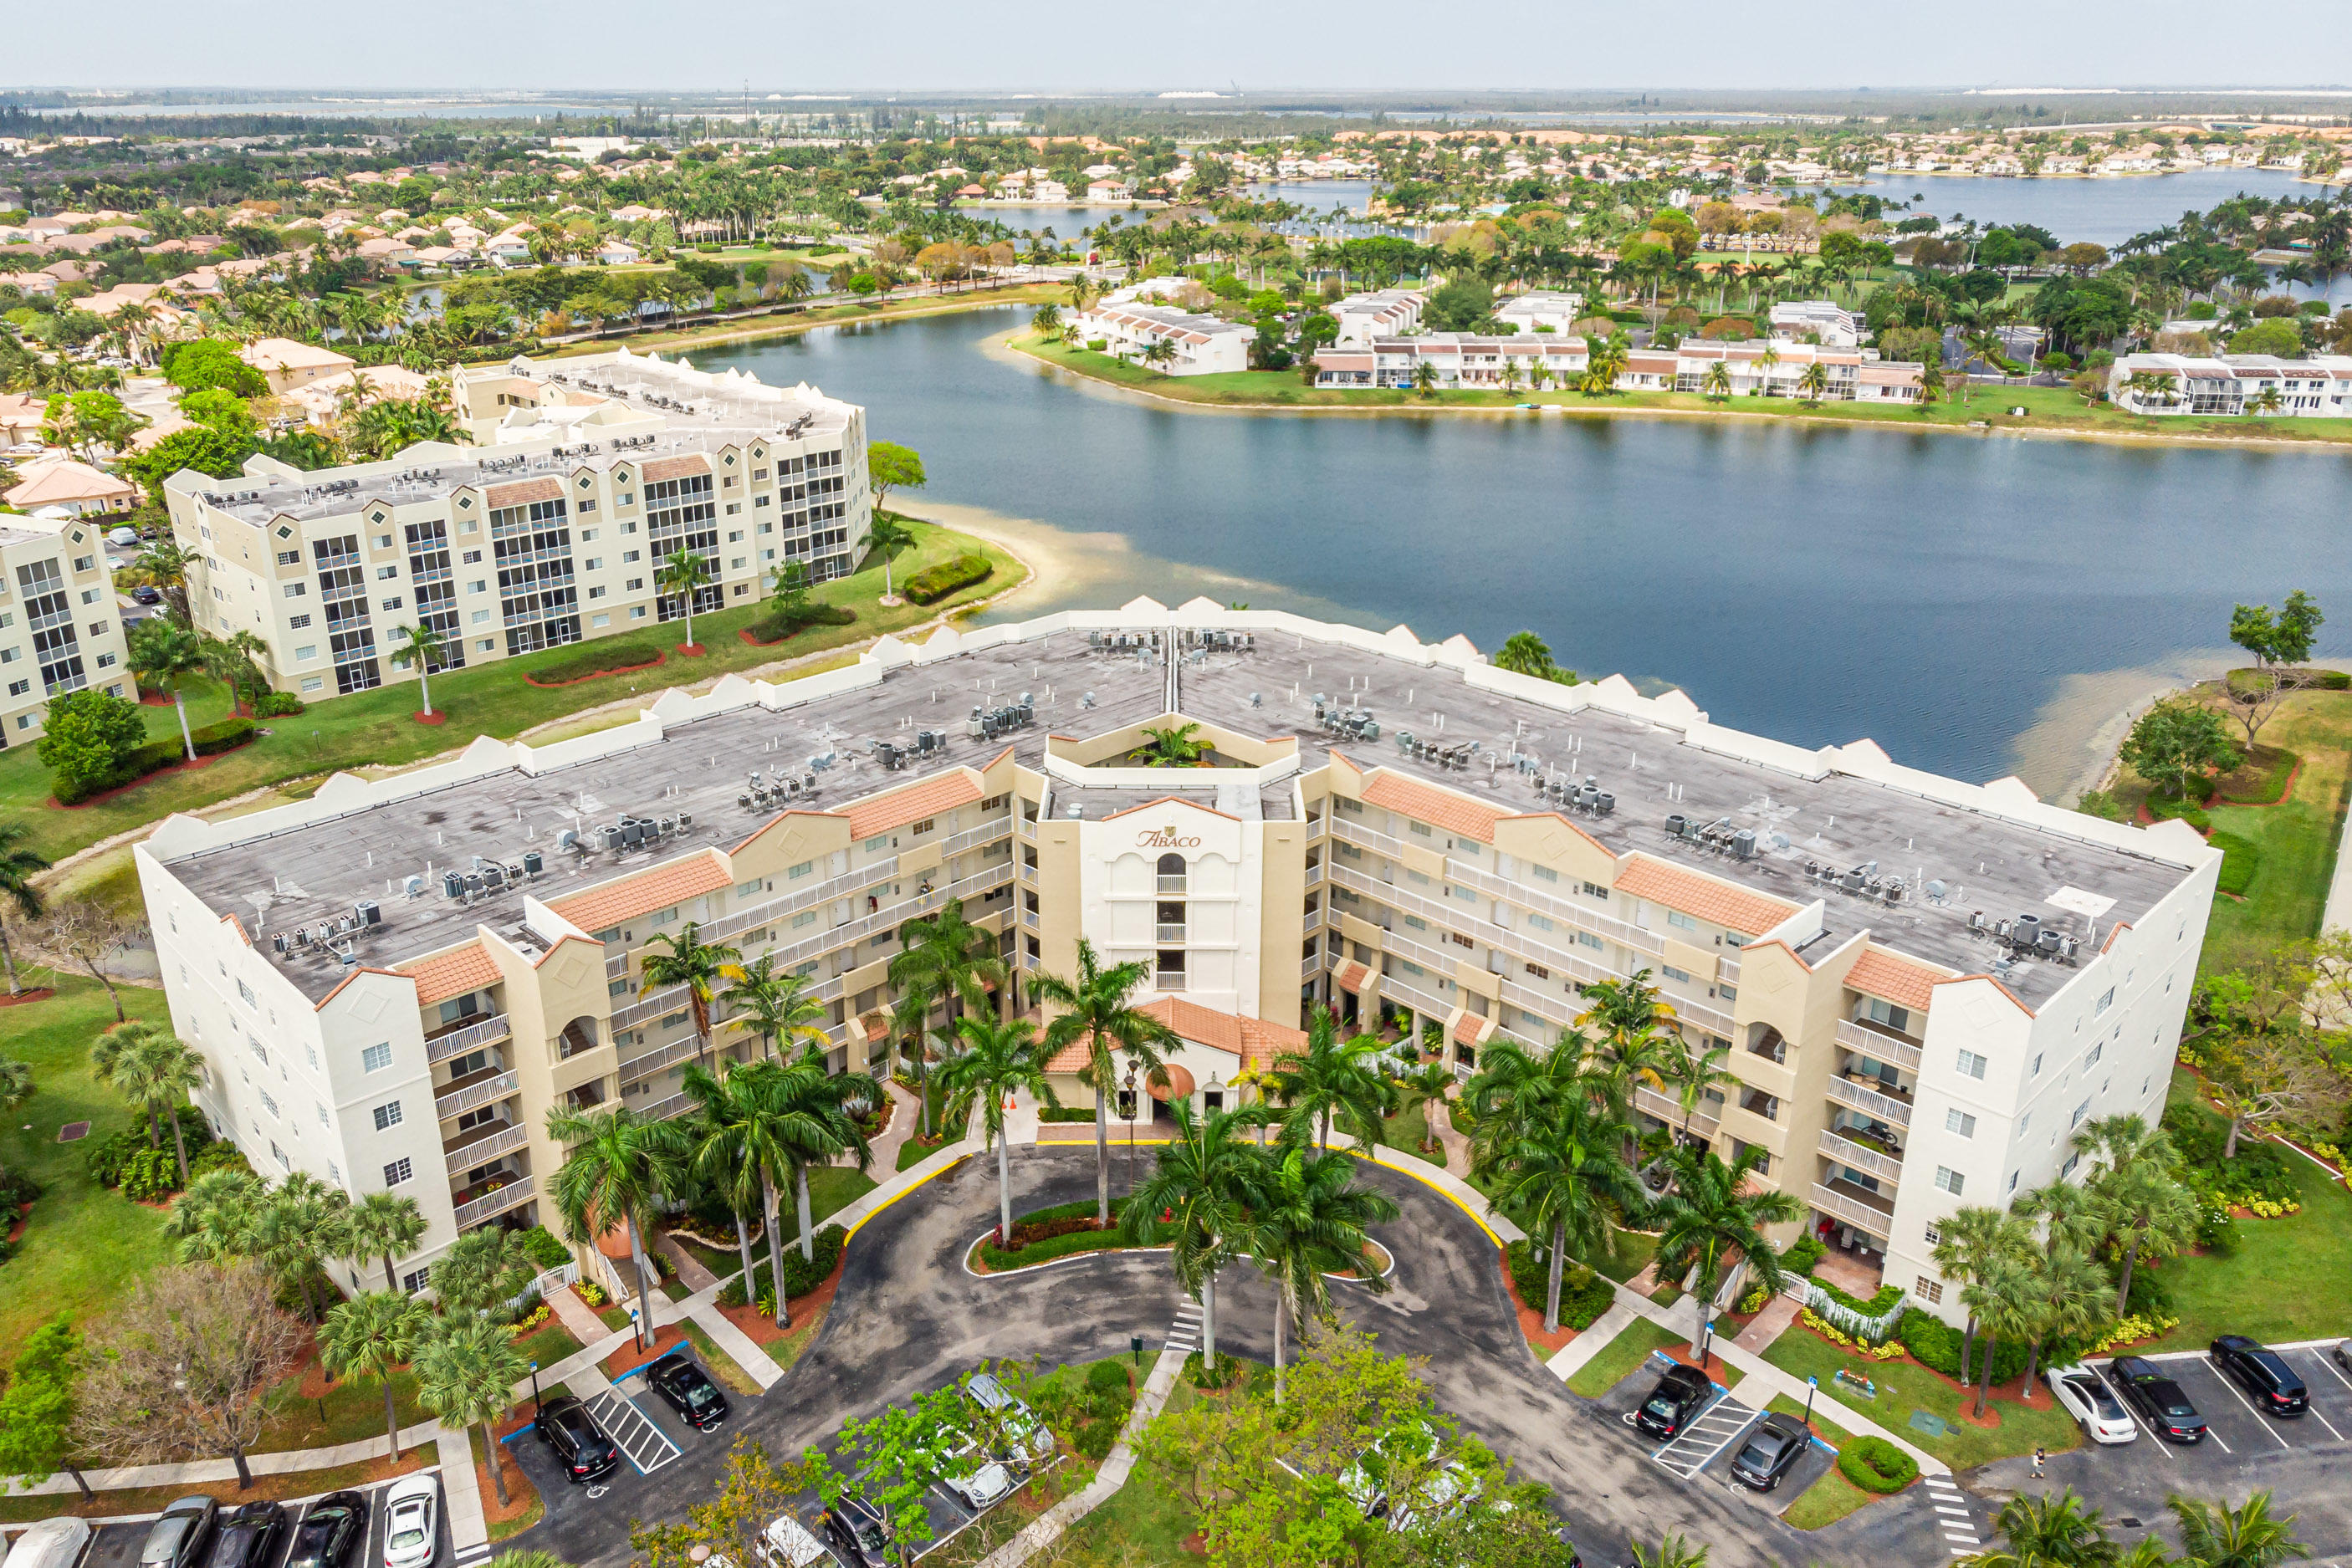 10720 NW 66th Street #206 - 0